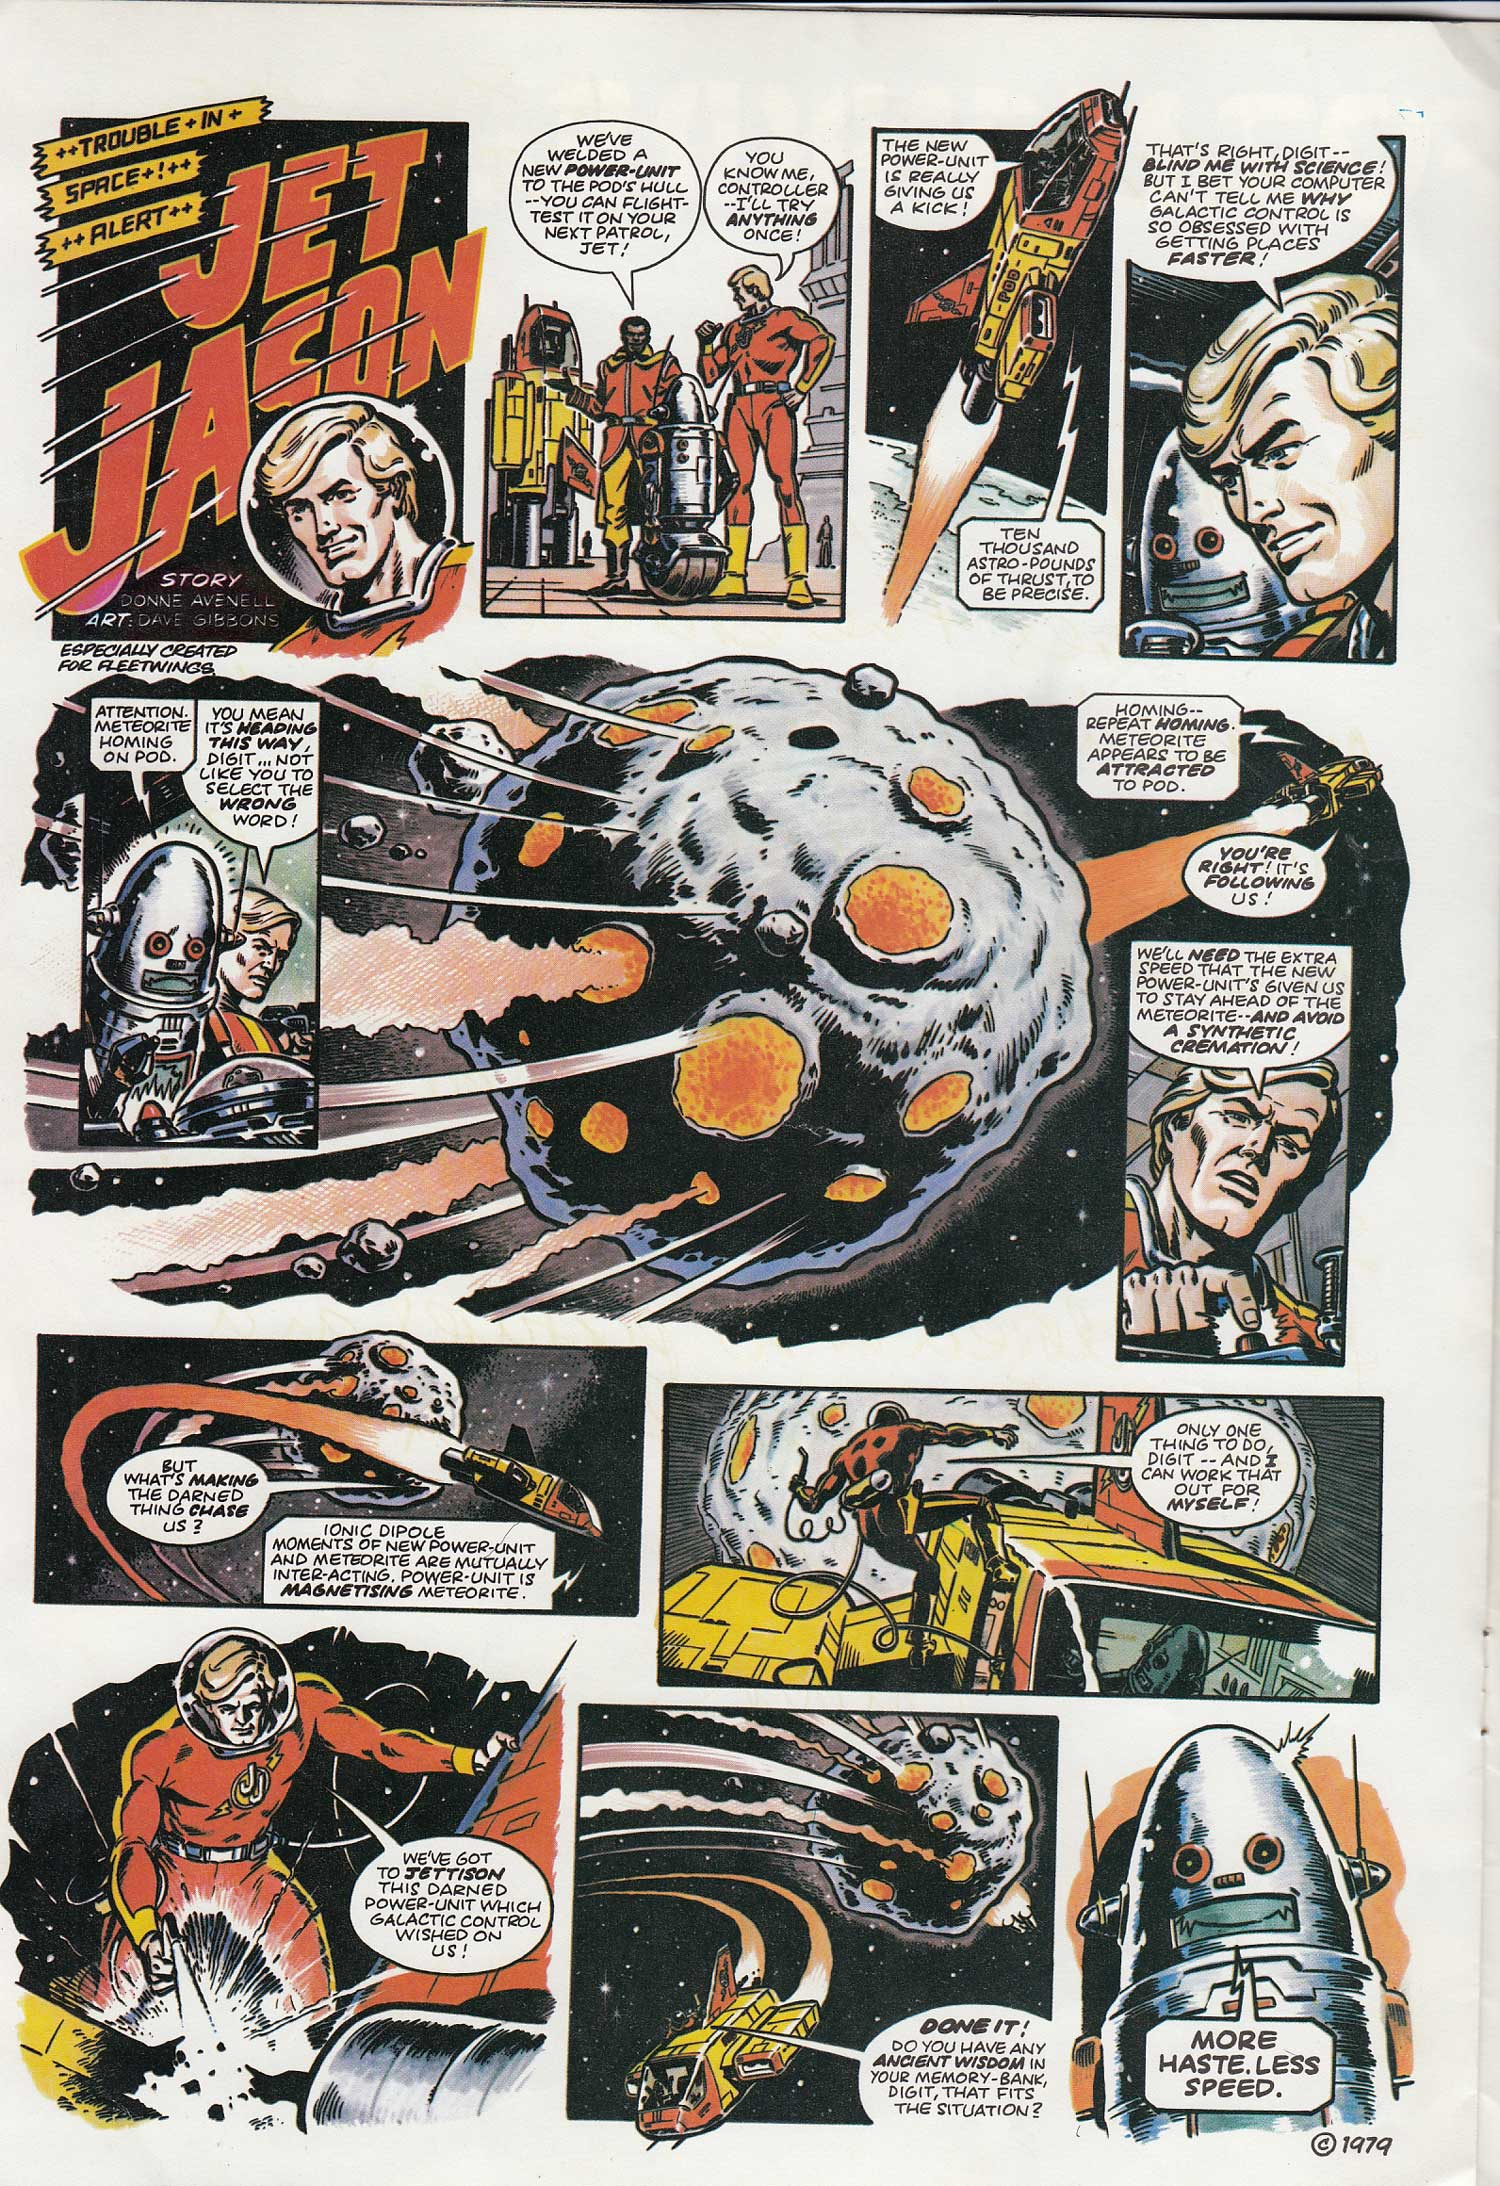 """The first episode of """"Jet Jason"""" for Fleetwings - July 1979 edition"""